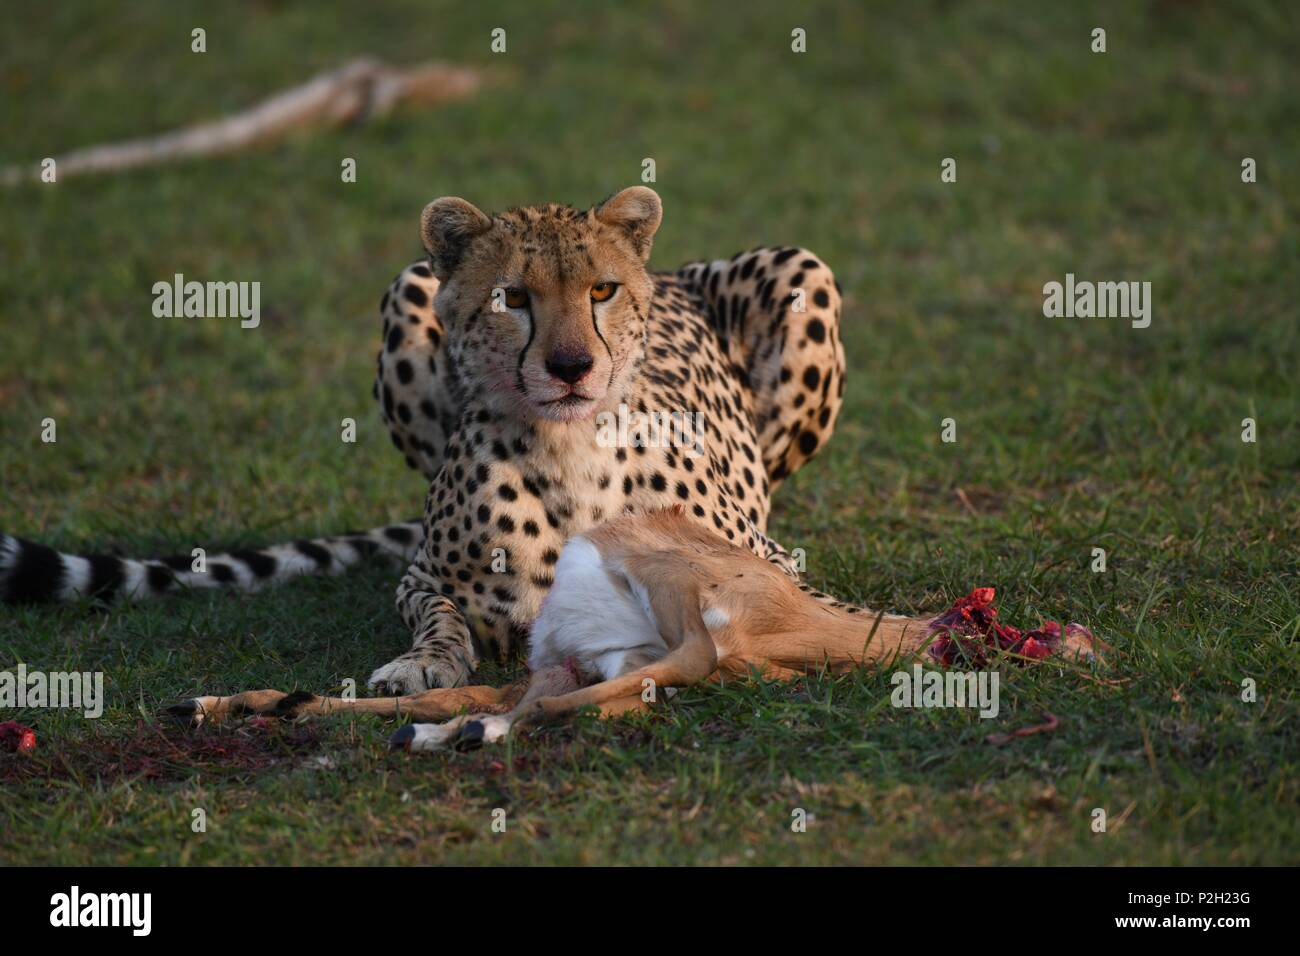 Lone cheetah sitting on the green Maasai Mara savannah eating its prey. Picture taken early morning, Olare Motorogi Conservancy. Acinonyx jubatus - Stock Image